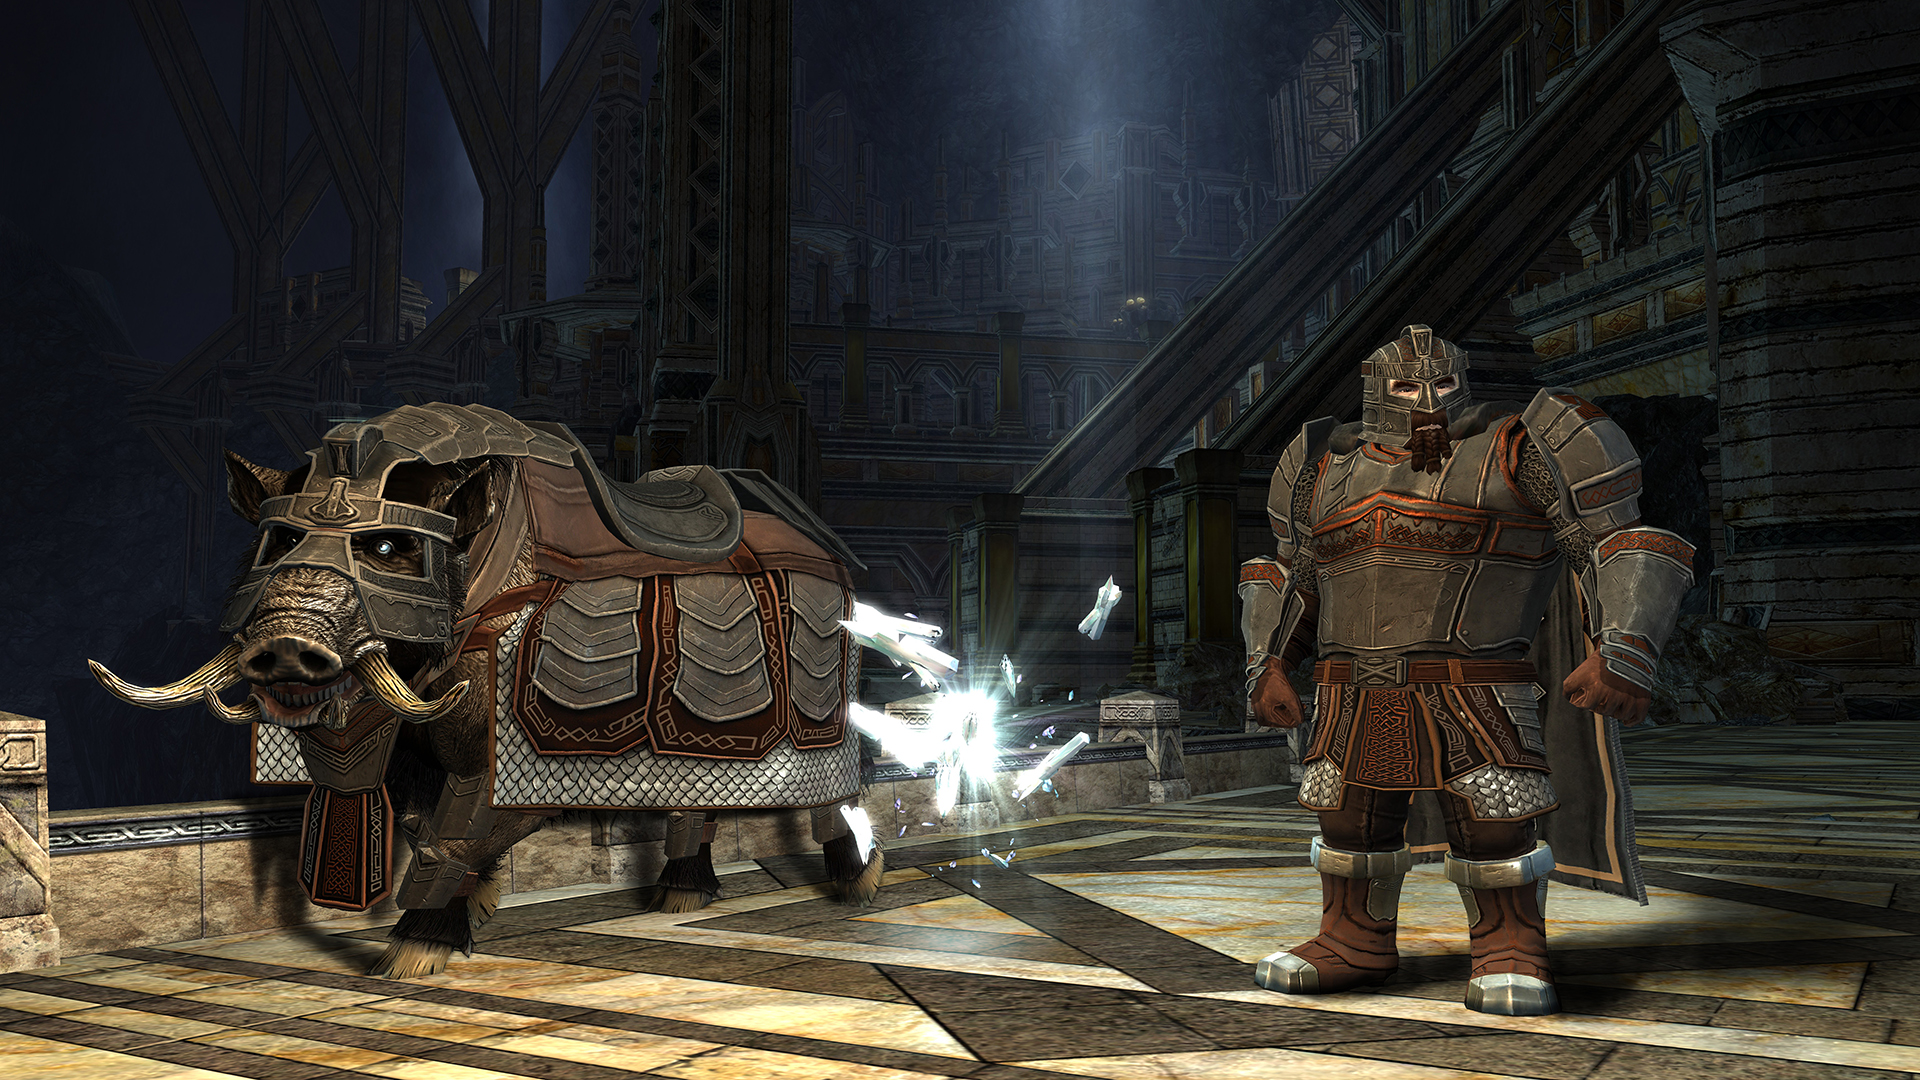 Patch 30.3 is Live in LOTRO Bringing With it the Brawler & Legendary Item Revamp 10